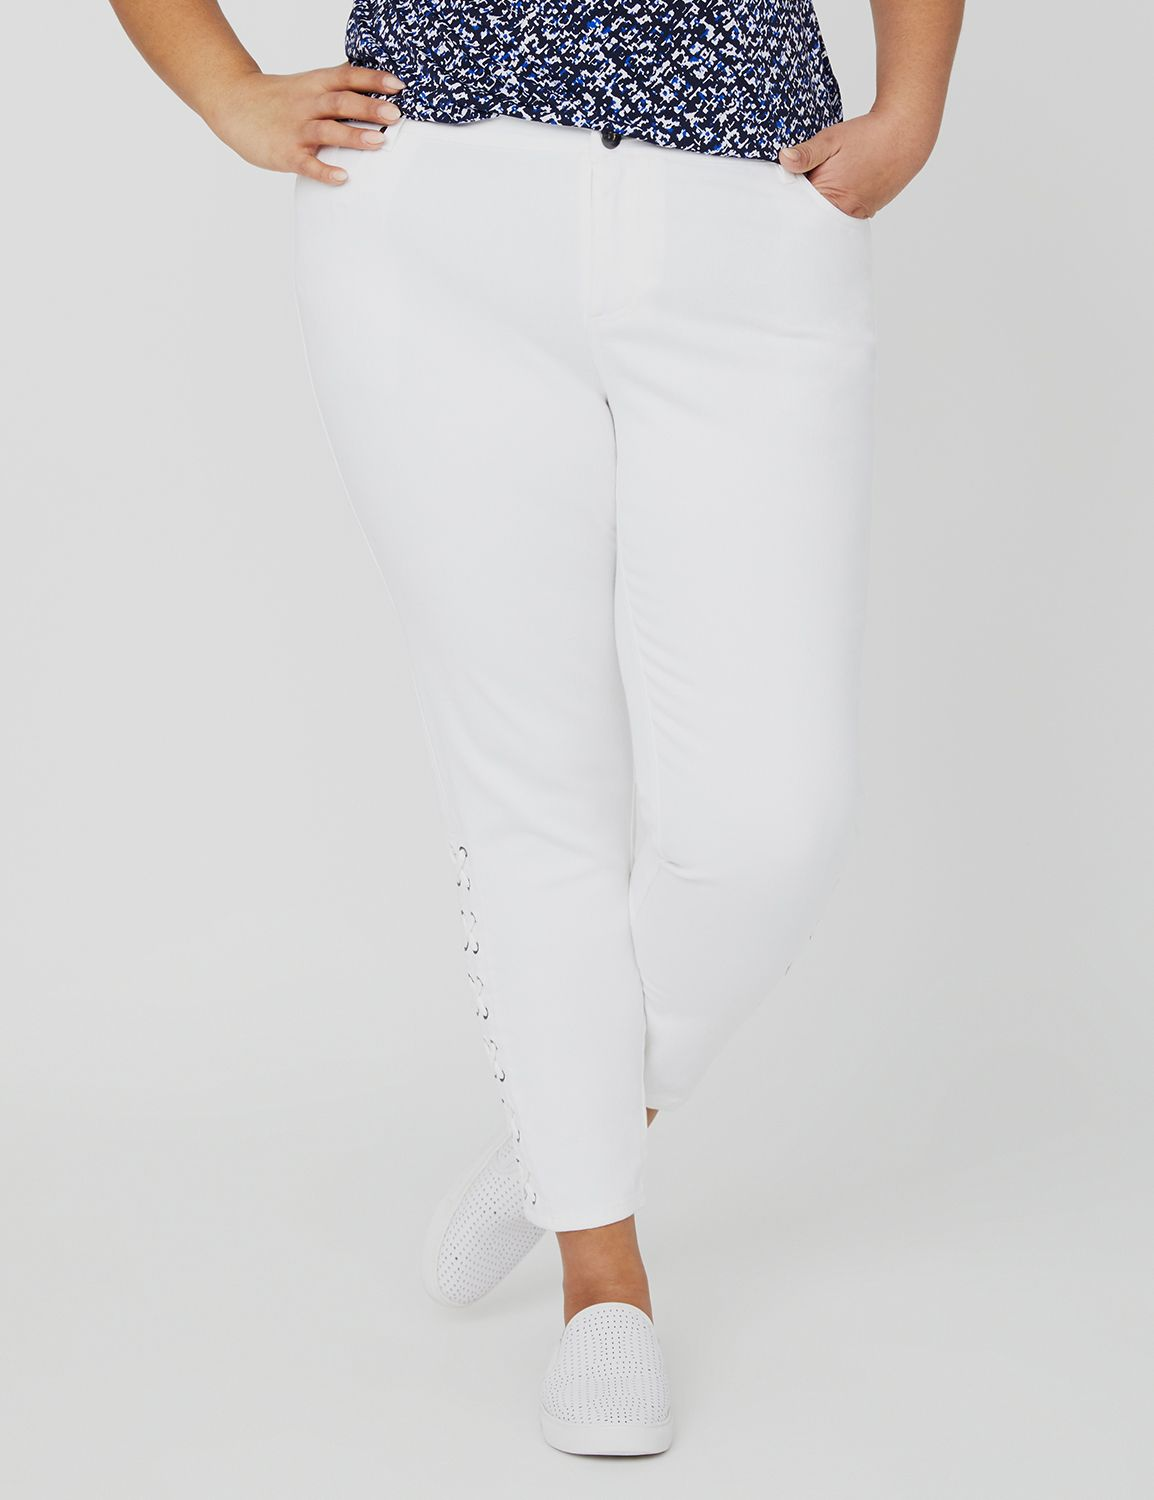 Curvy Collection Lace-Up White Jean 1091485 Curvy Collection Sateen Whi MP-300098724